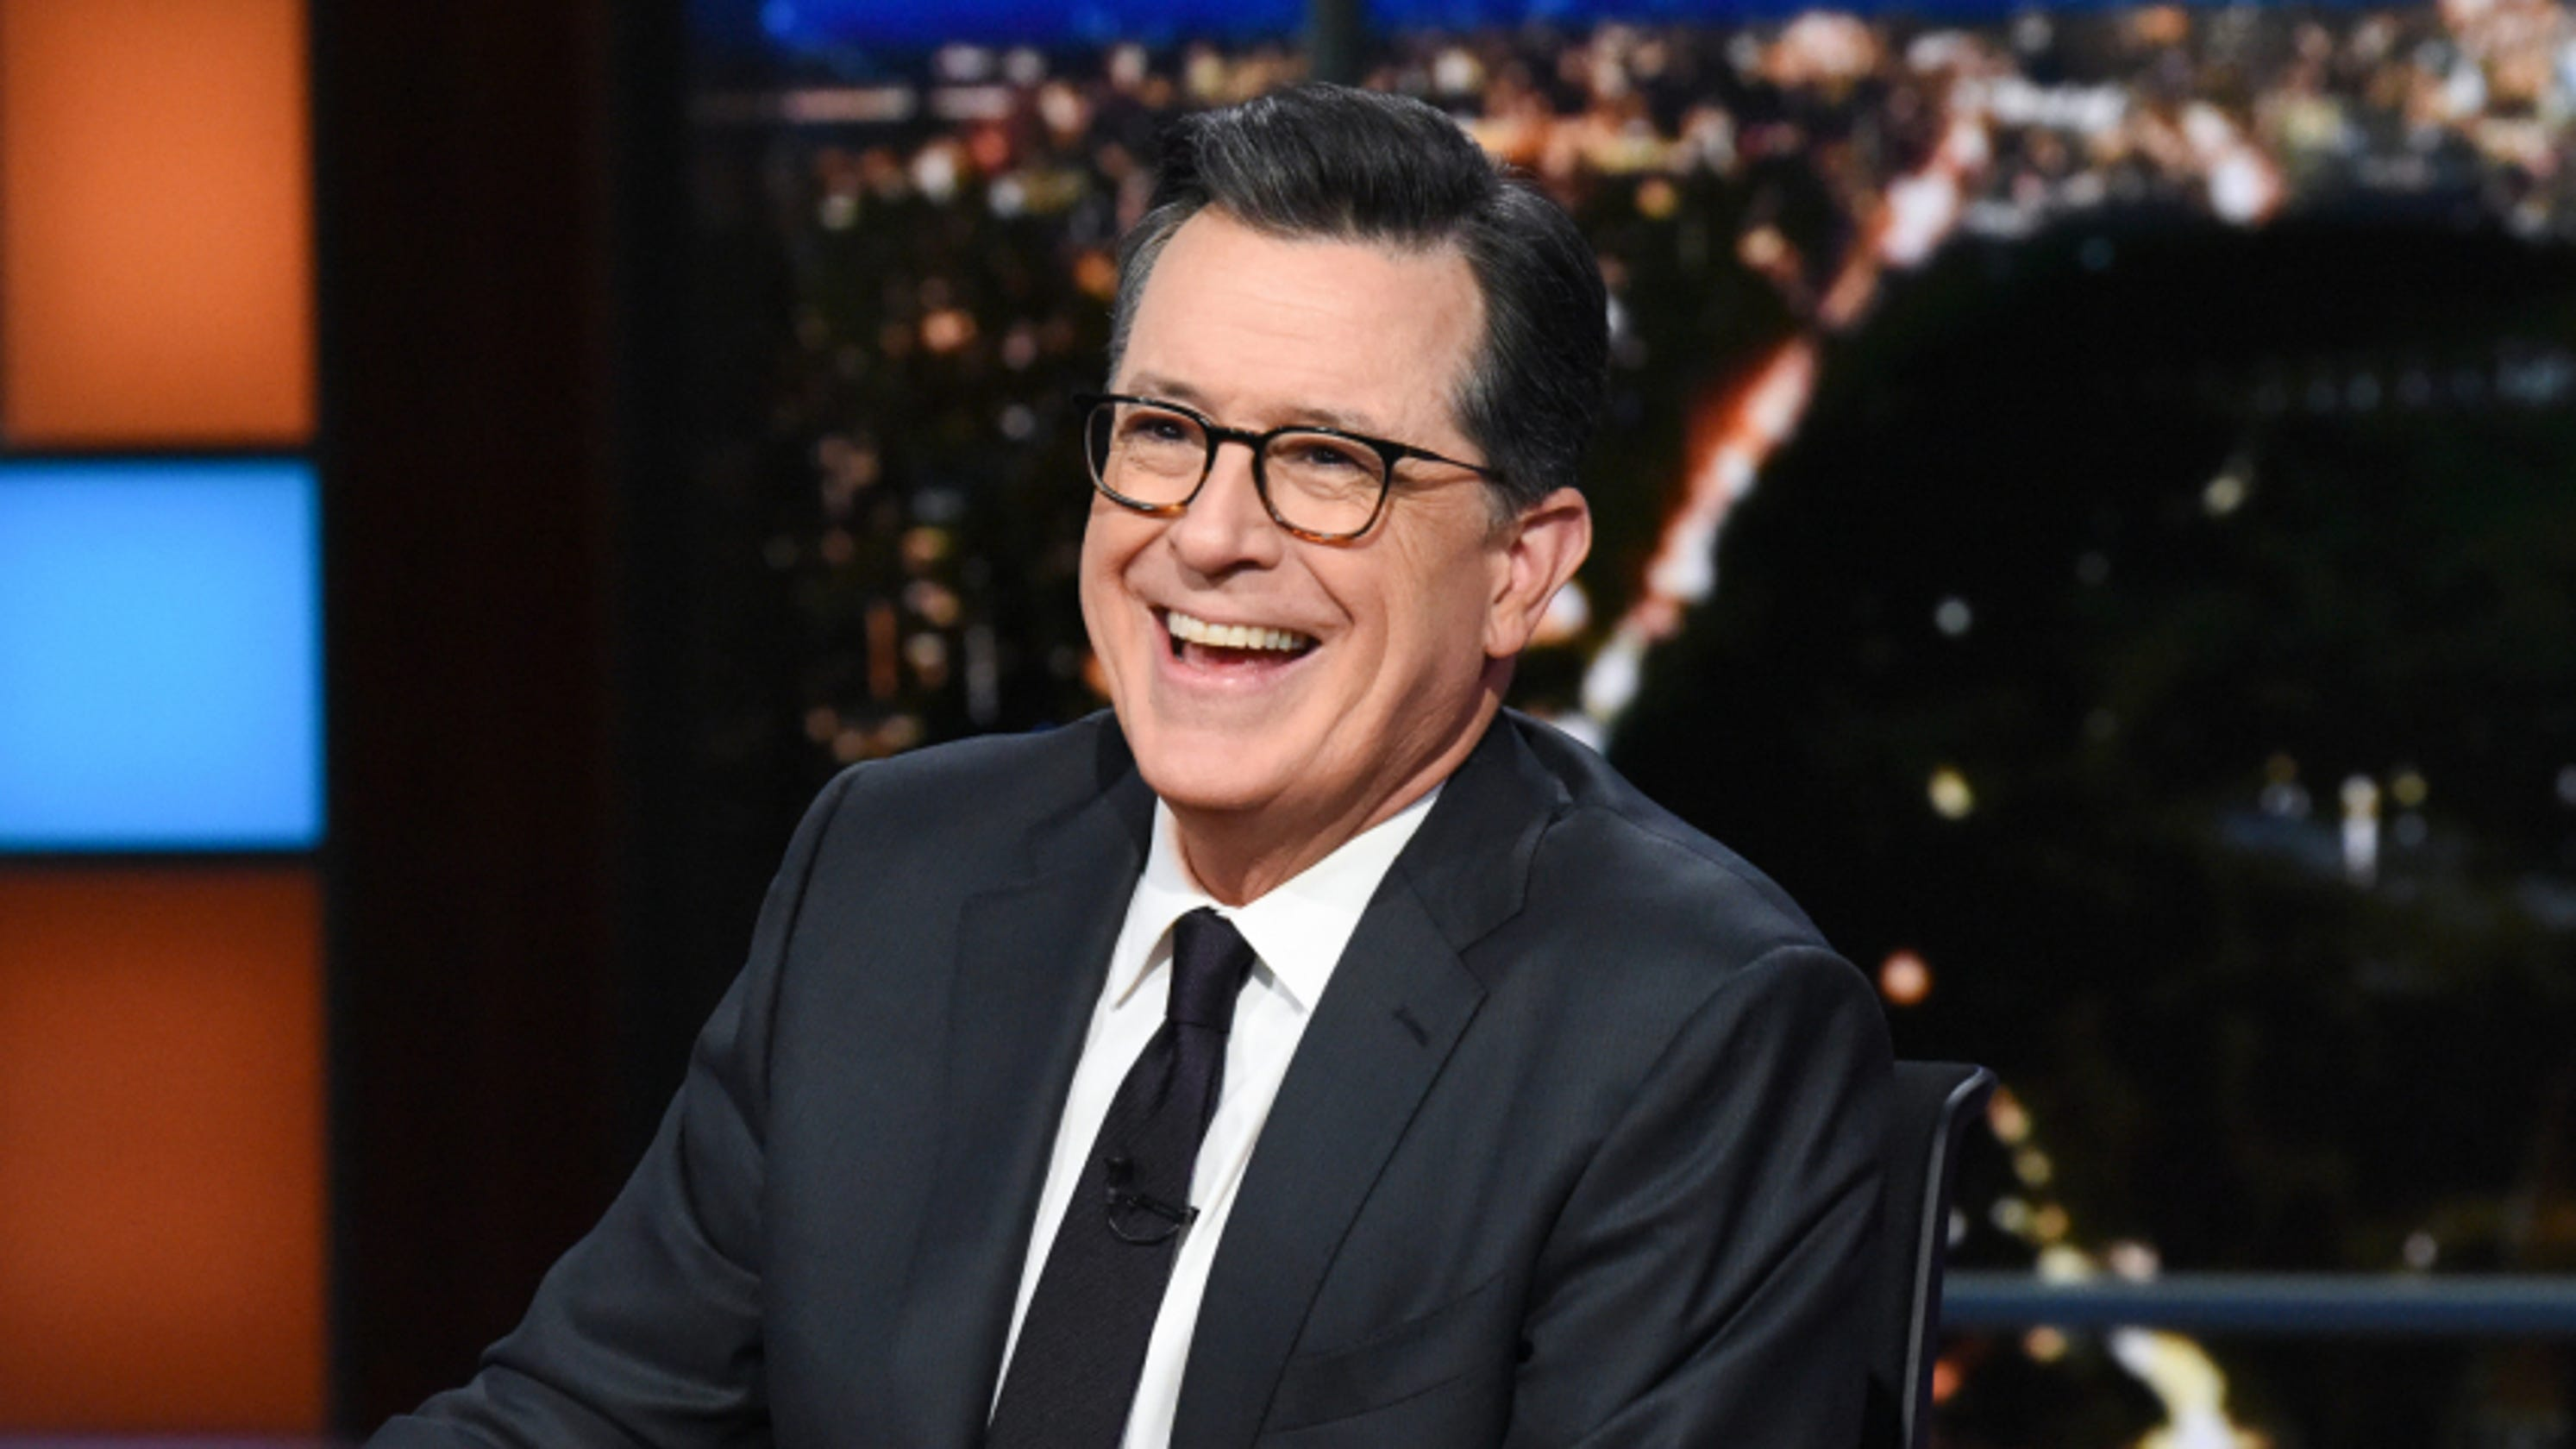 Colbert apologizes for Trump's 'terrible' presidency in Best of Late Night